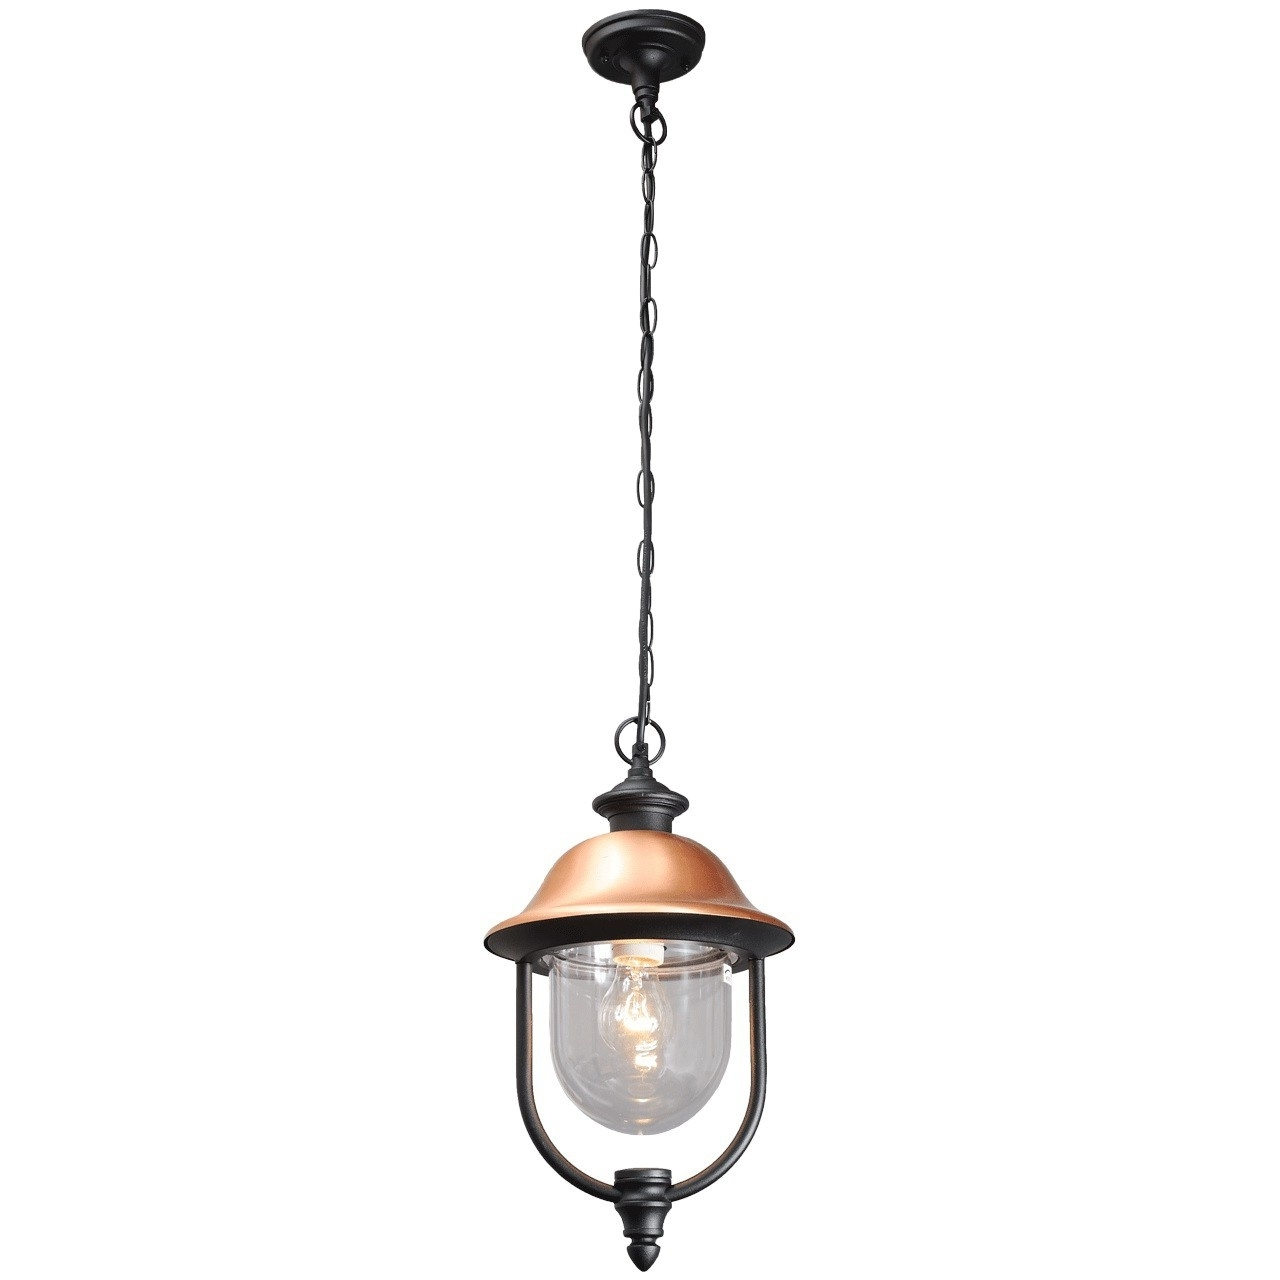 Outdoor Pendant Light Crystal Pendant Light' Brushed Nickel Mini Pertaining To Popular Outdoor Hanging Orb Lights (View 17 of 20)